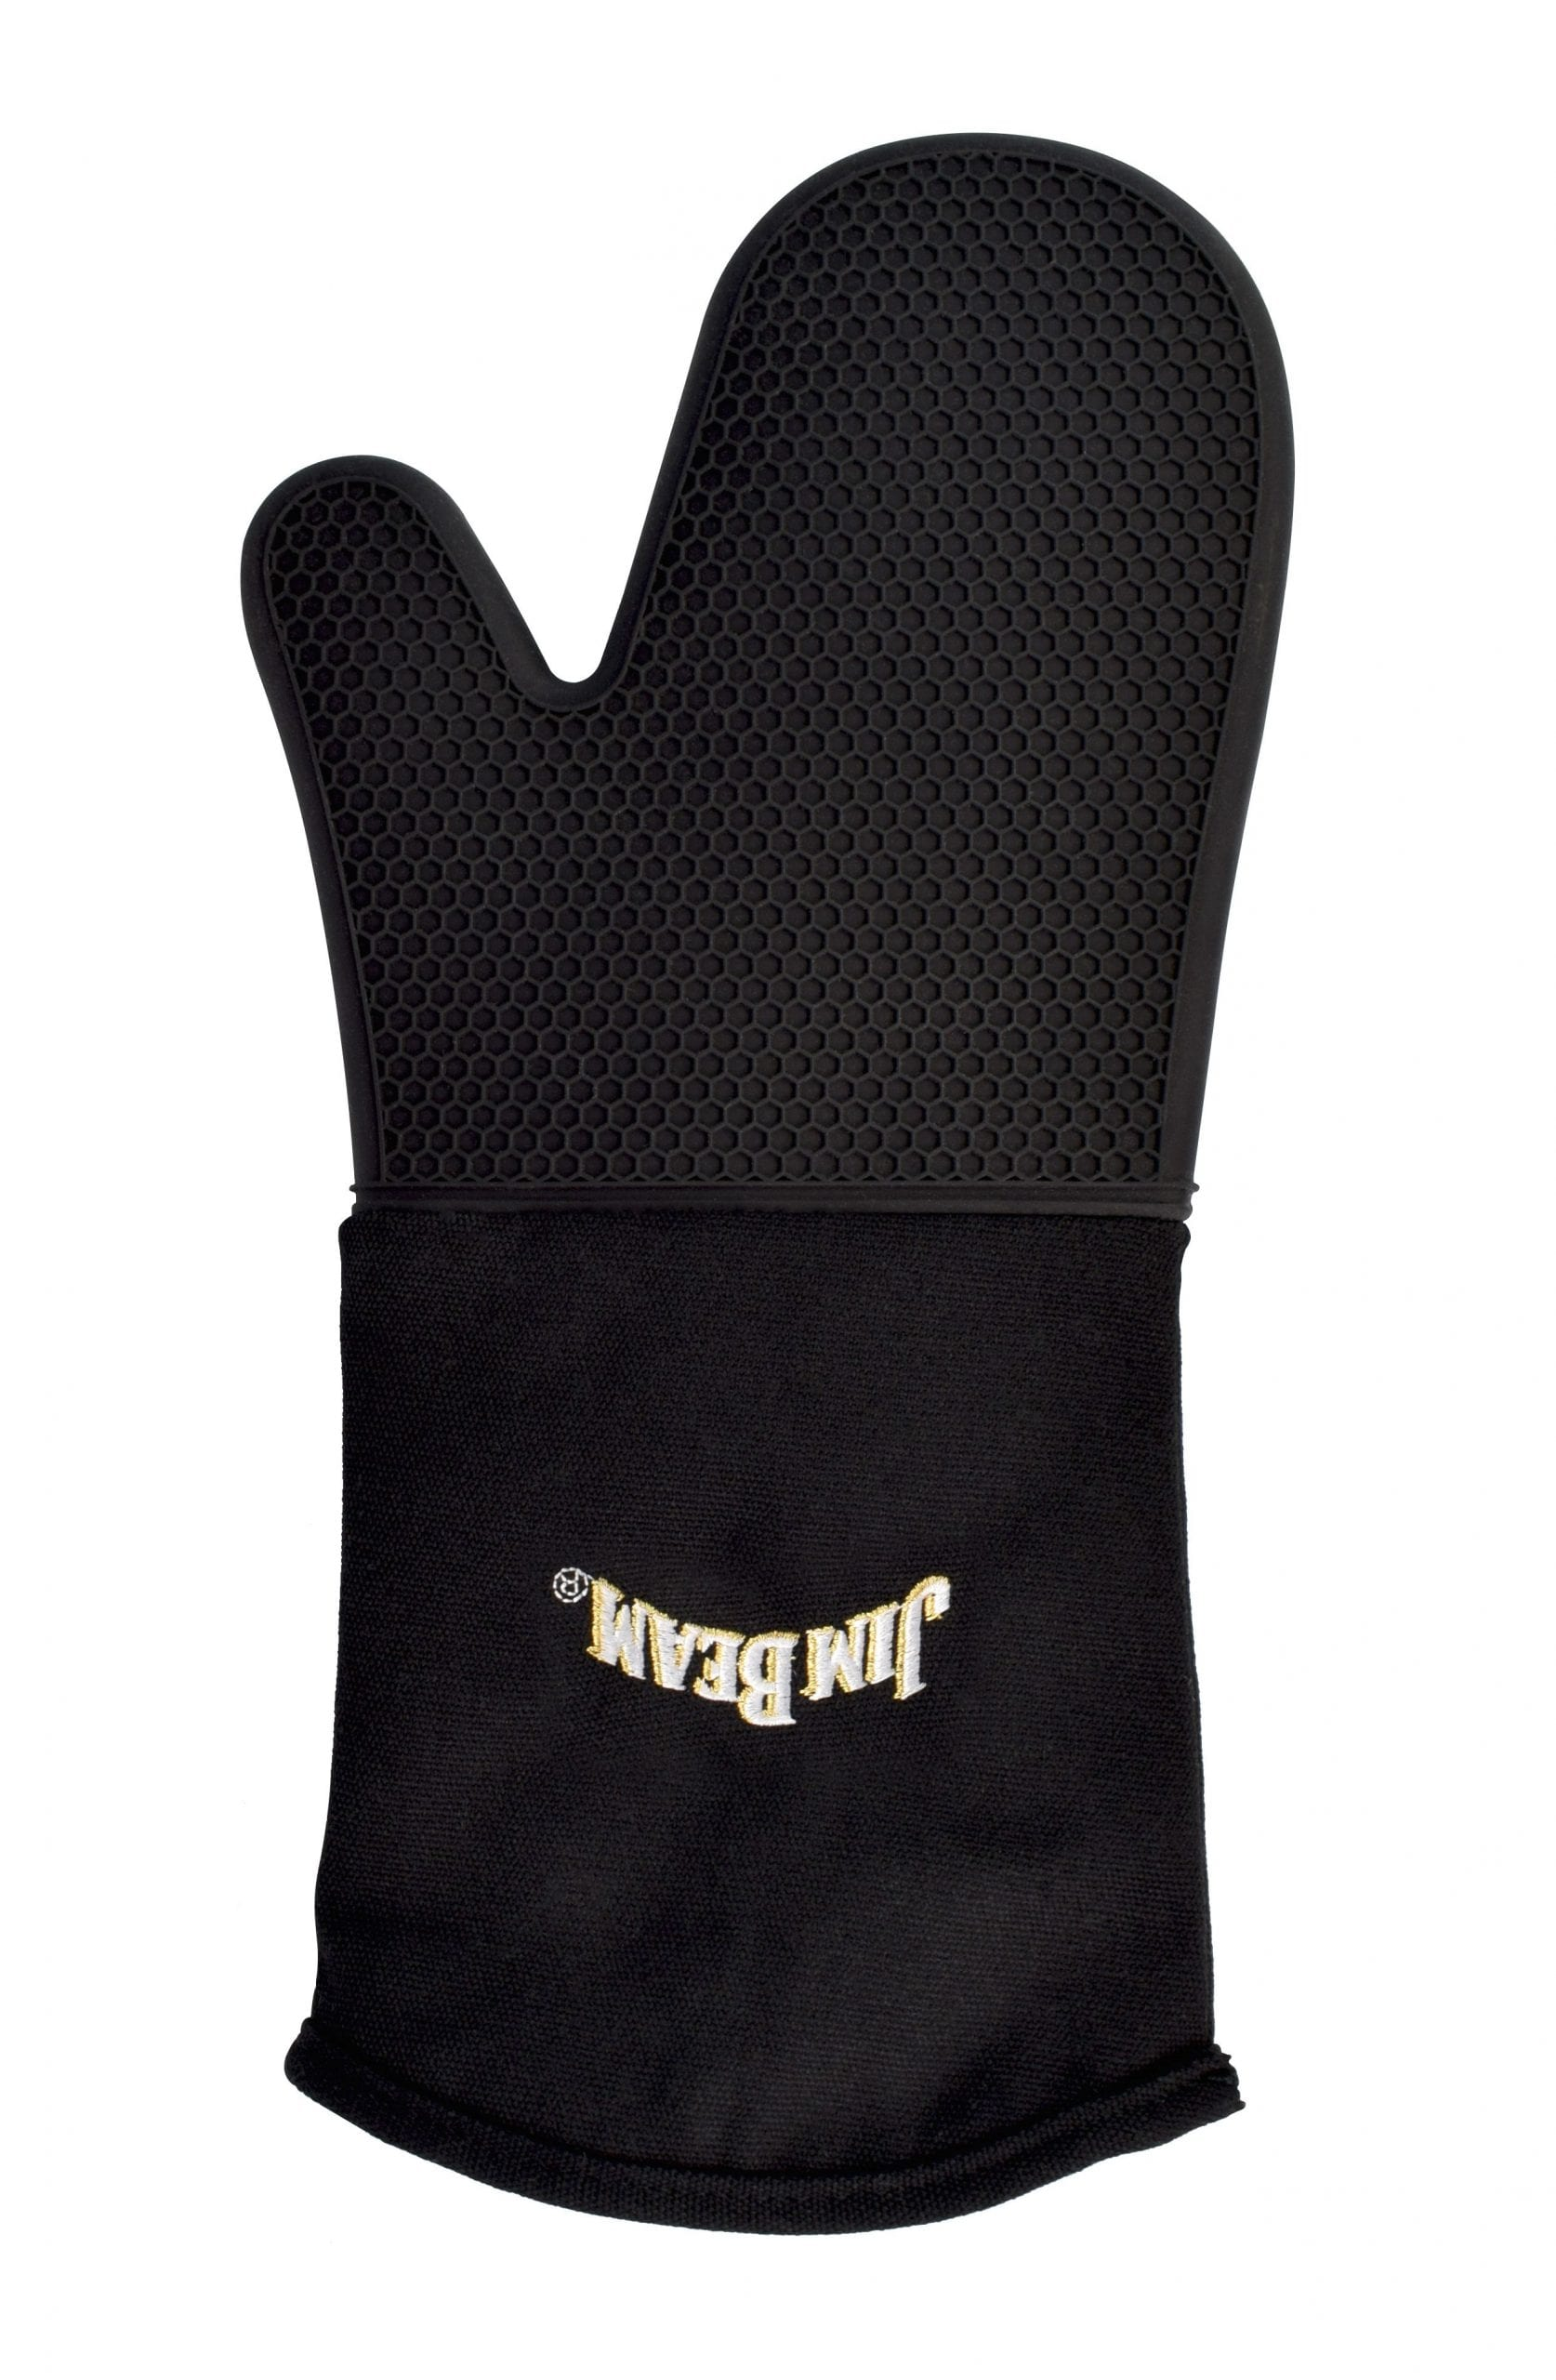 Jim Beam Heavy Duty Grilling Mitten scaled